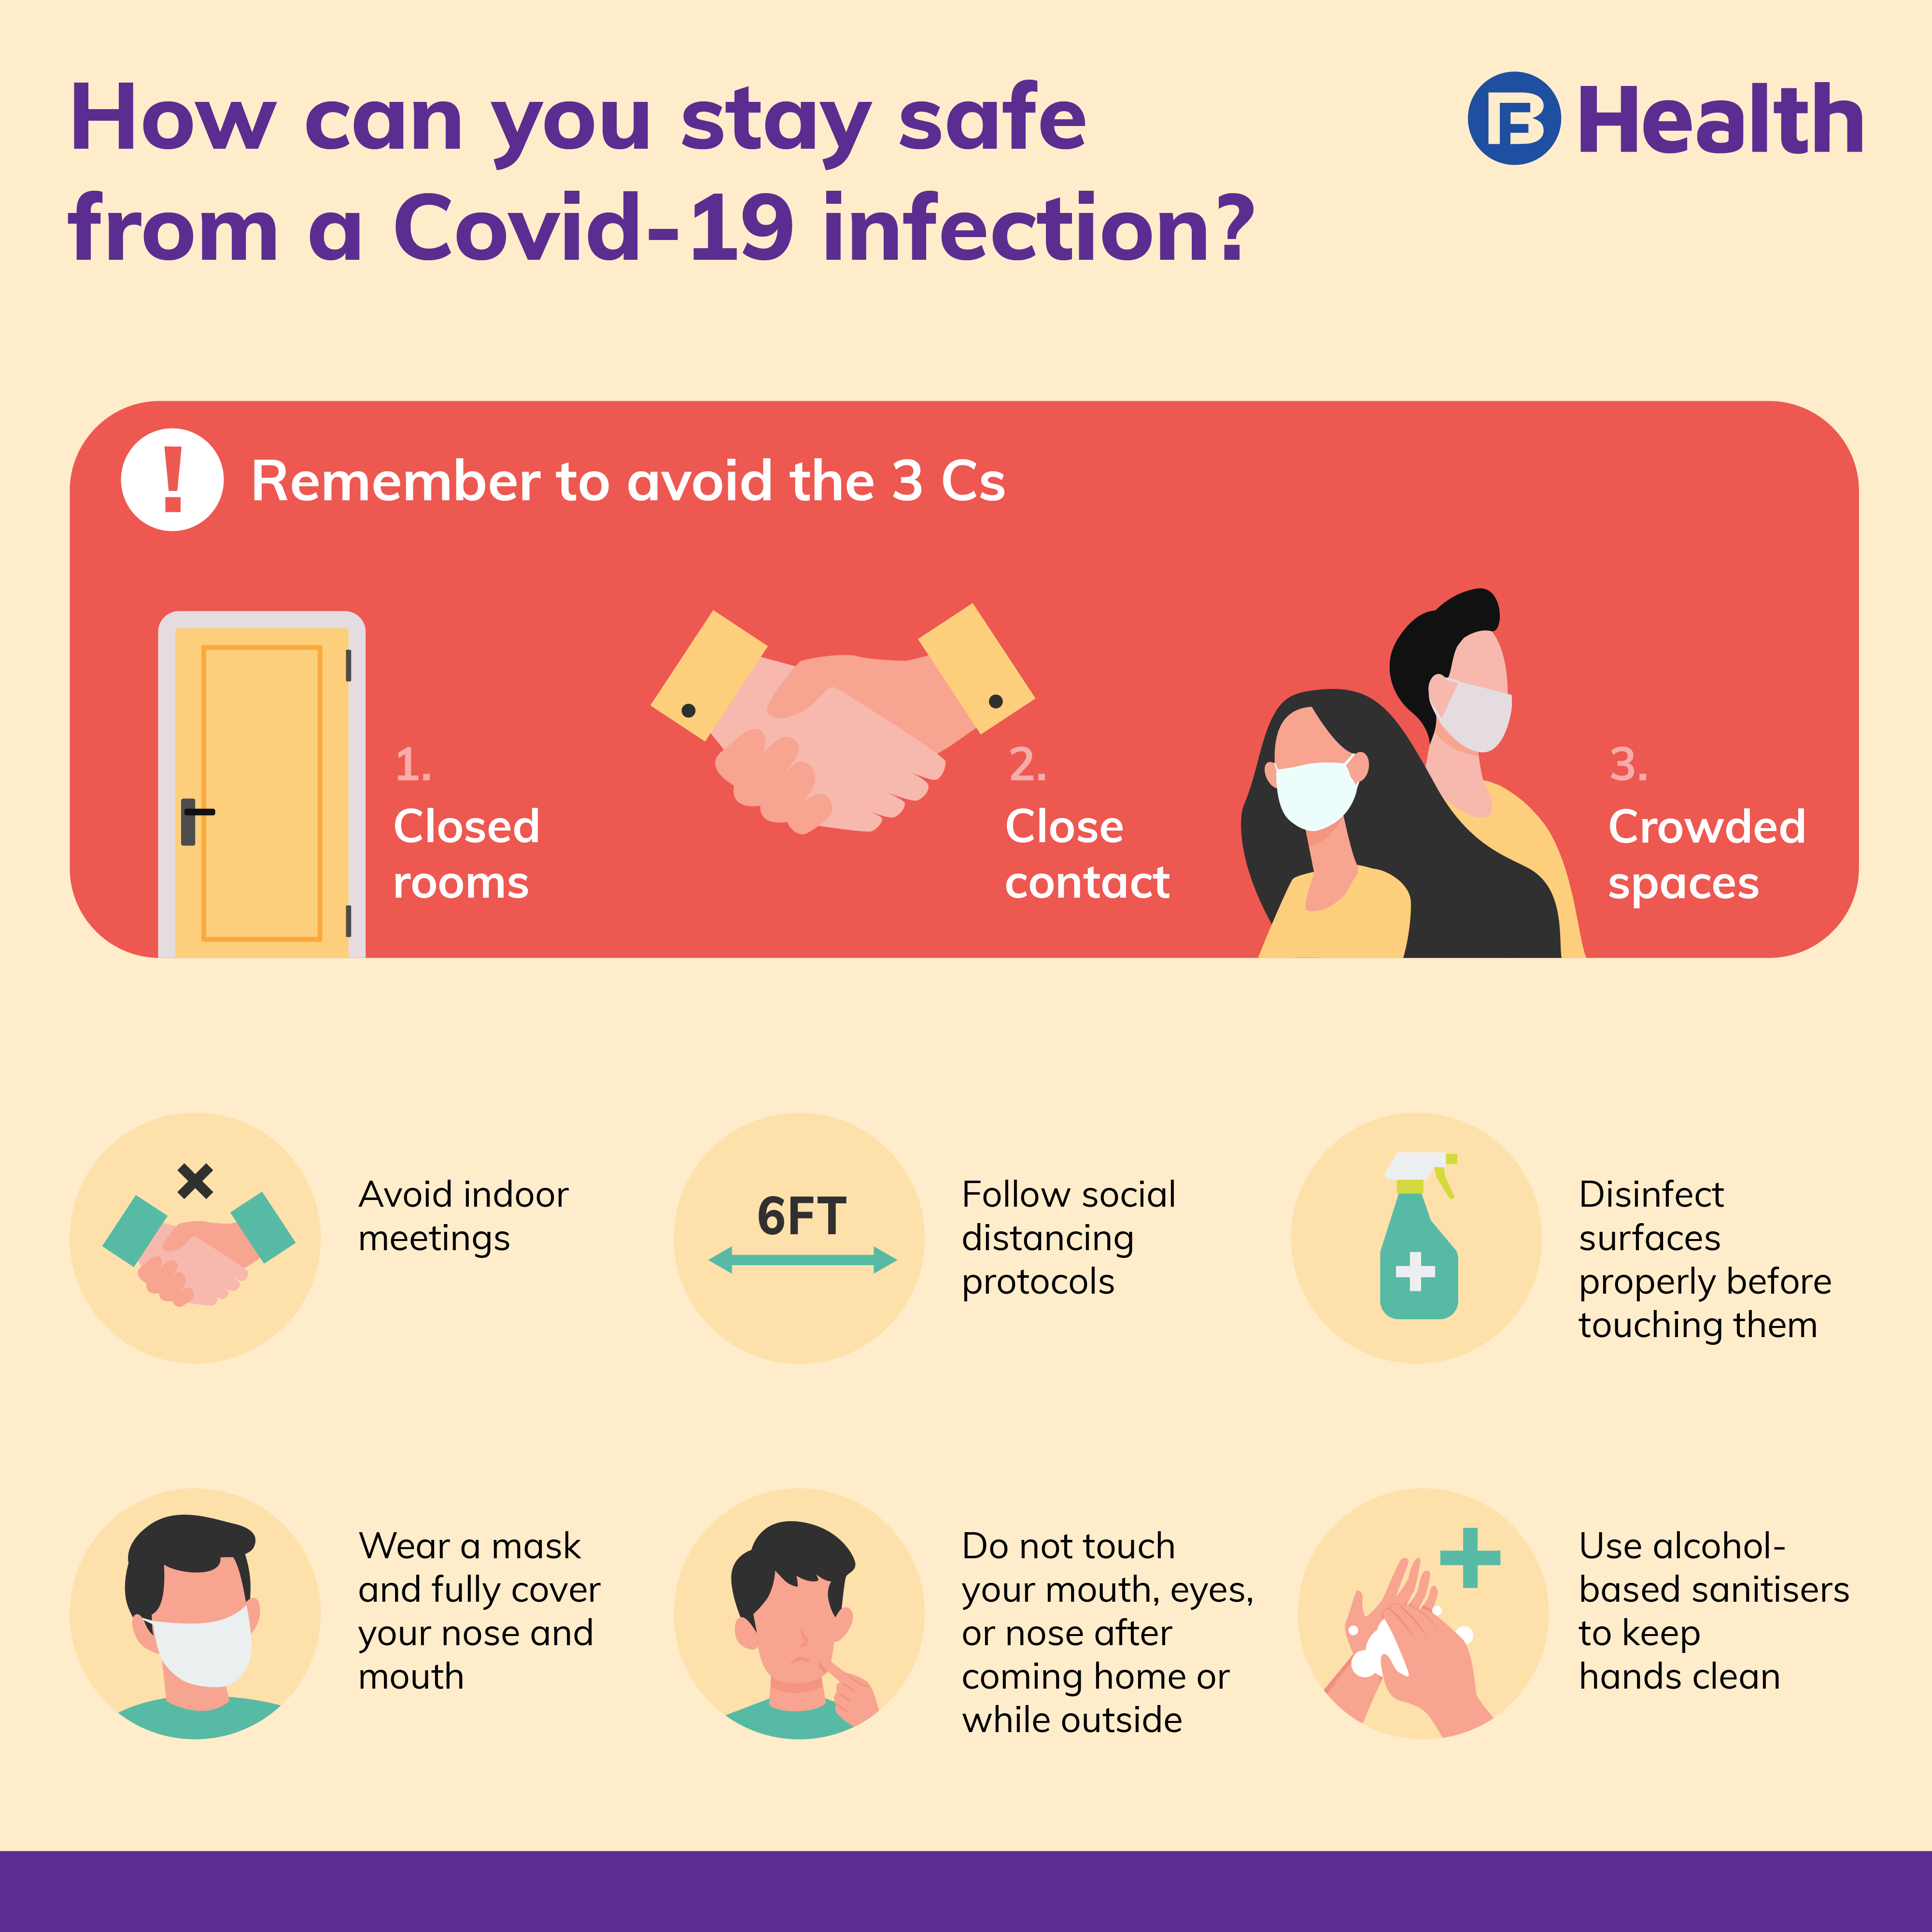 How to stay safe from COVID-19 infection